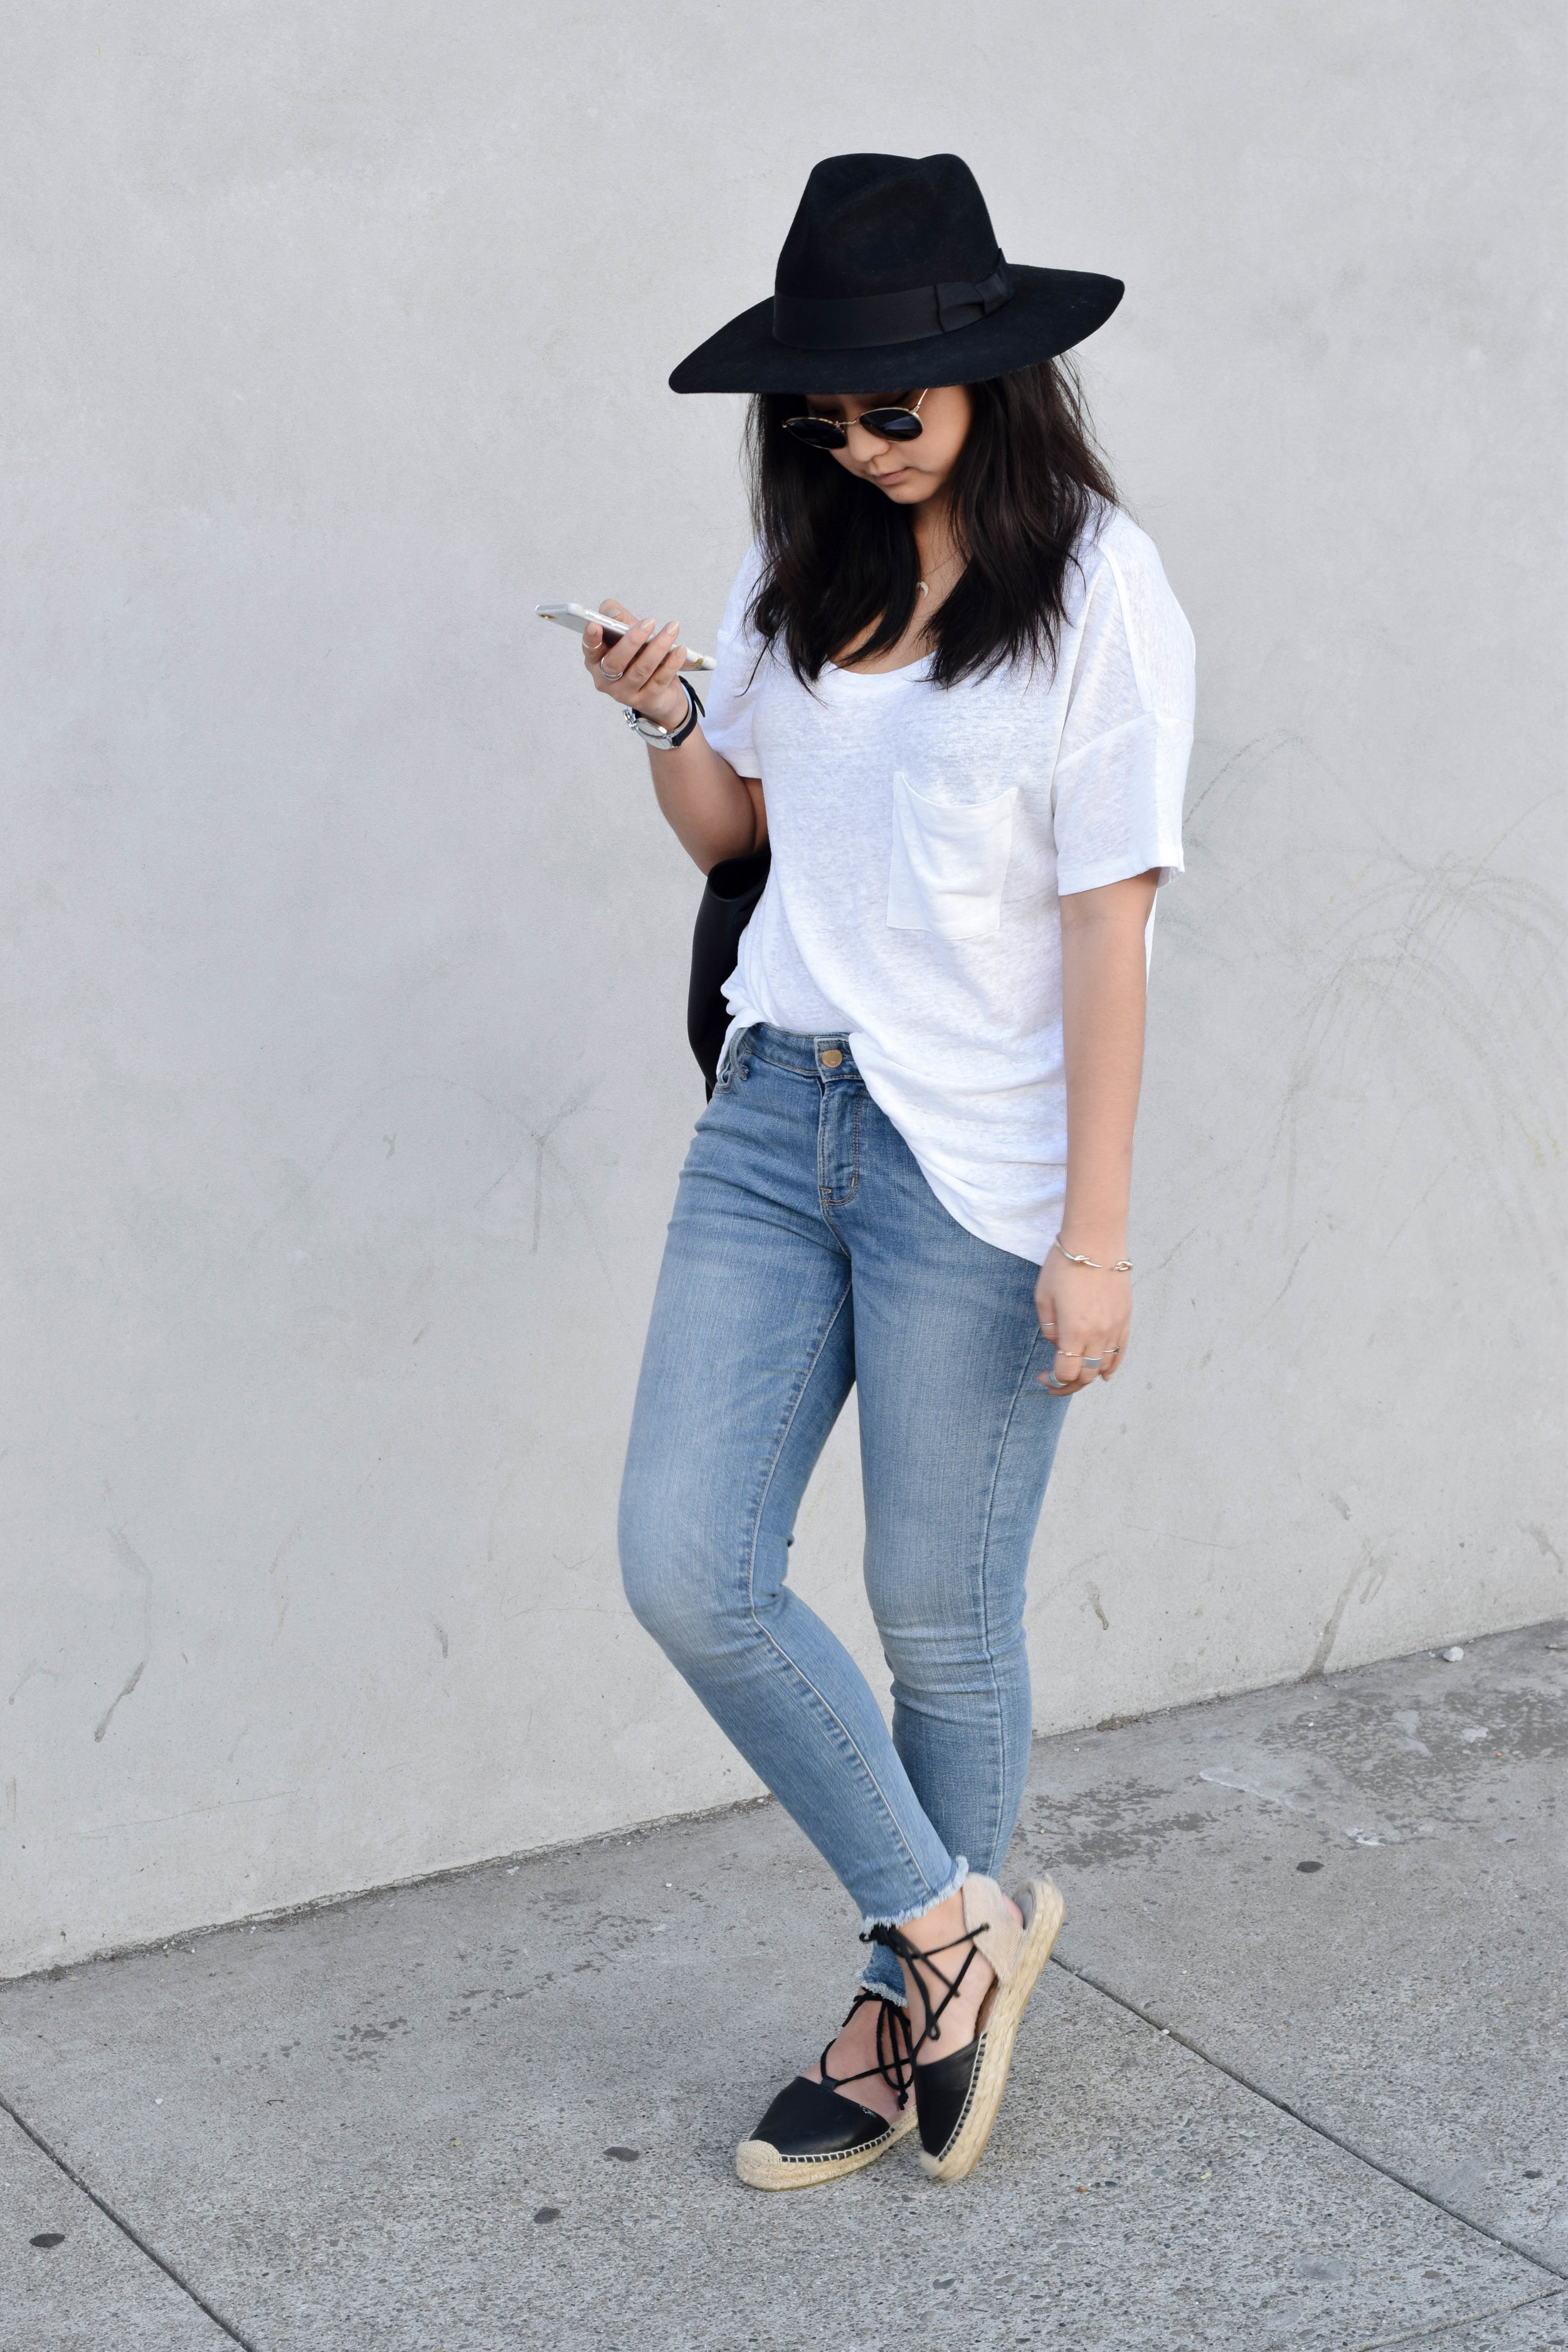 OLD NAVY   boyfriend tee   / OLD NAVY   mid-rise skinny jeans   / SOLUDOS   sandals